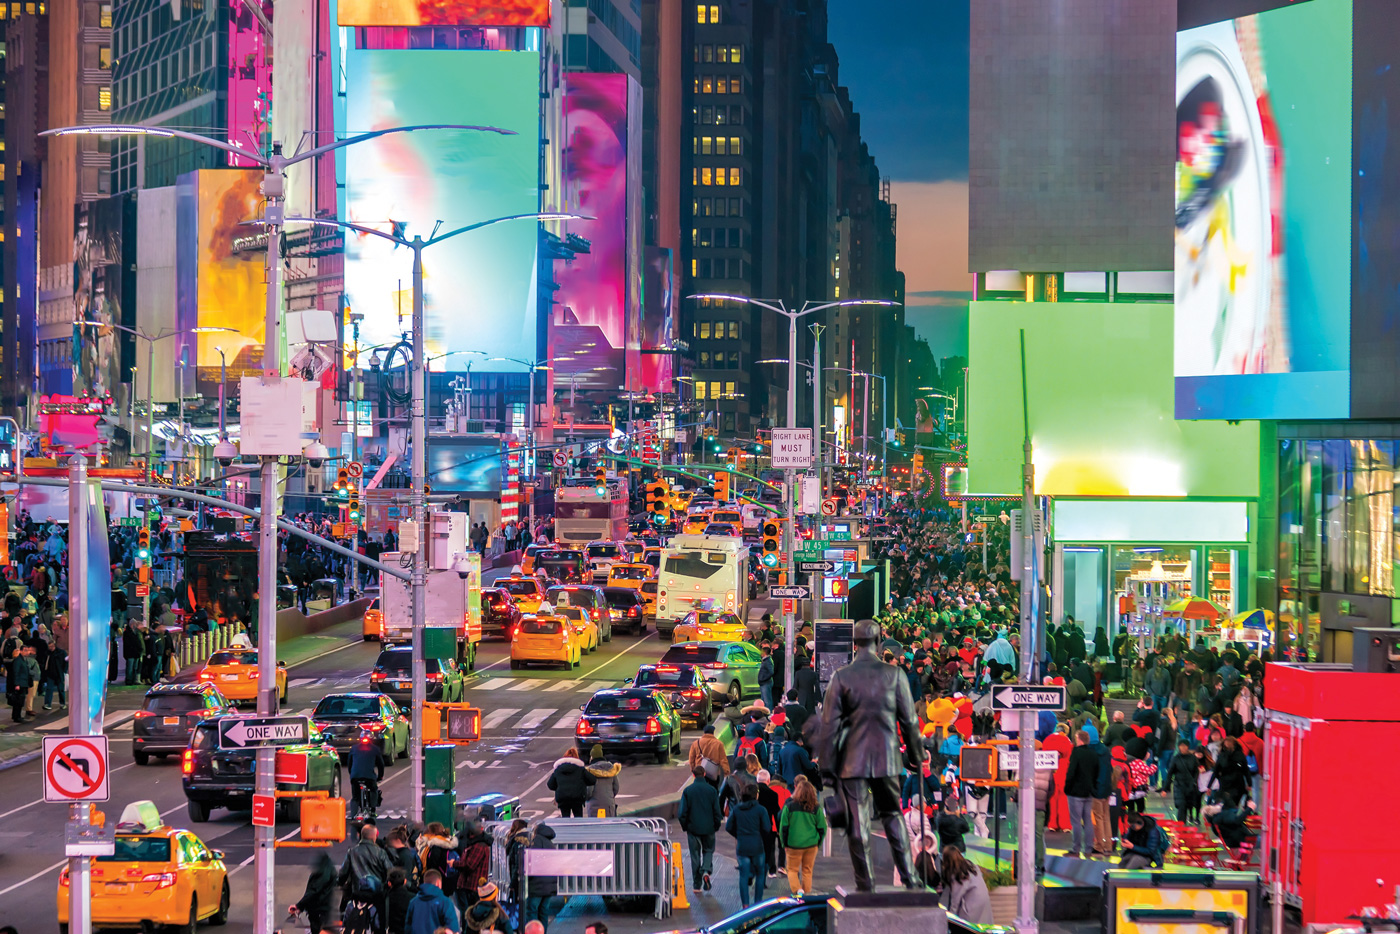 Picture of New York with illuminated billboards